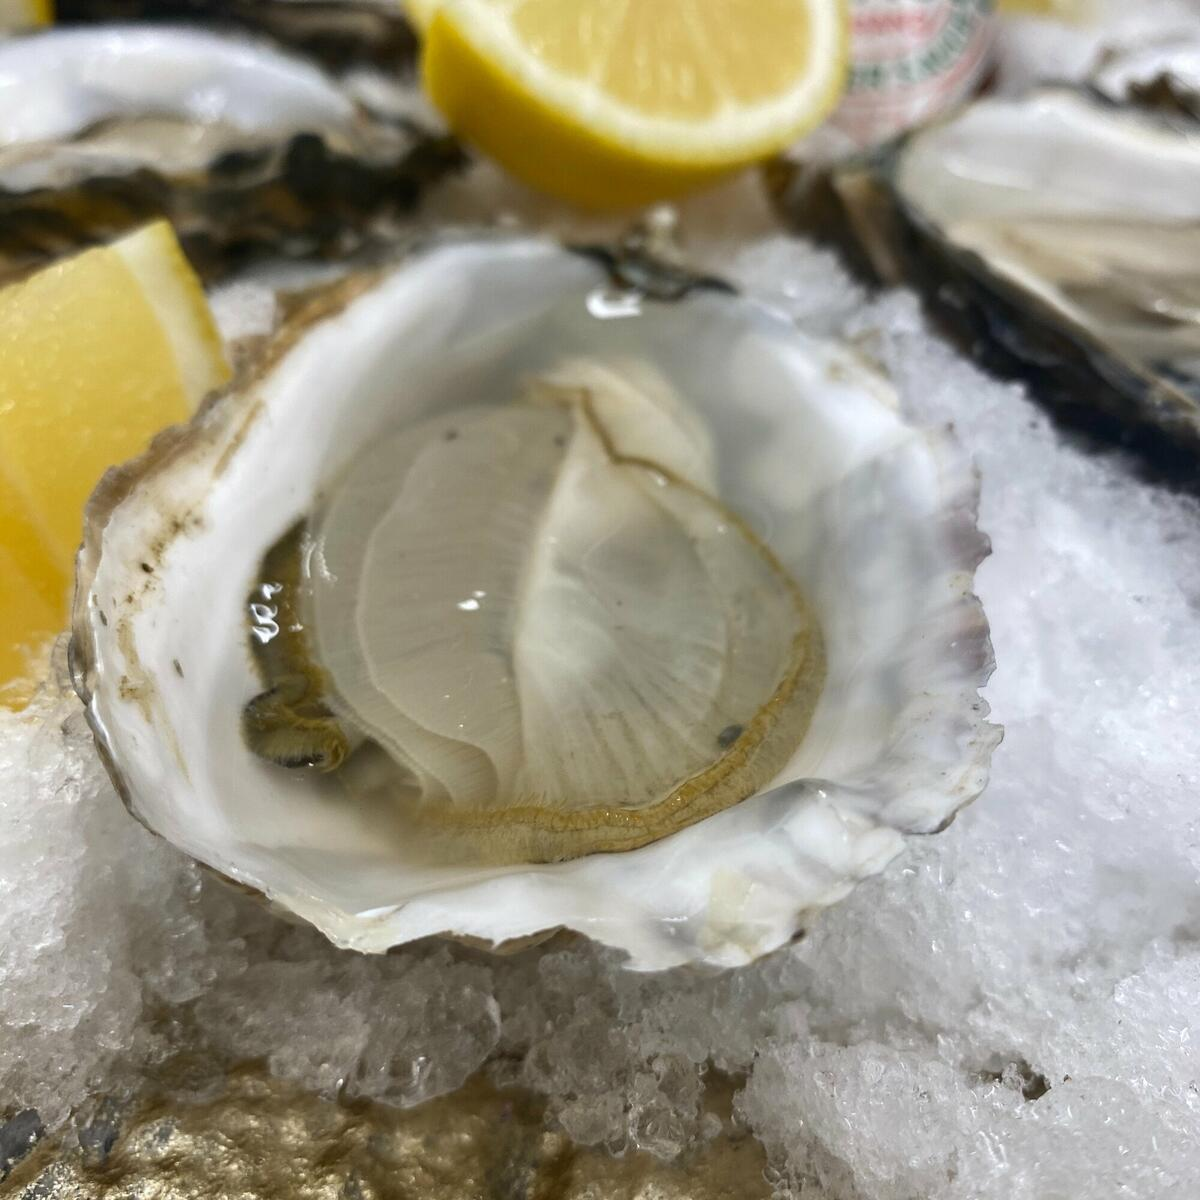 Porthilly Rock Oysters